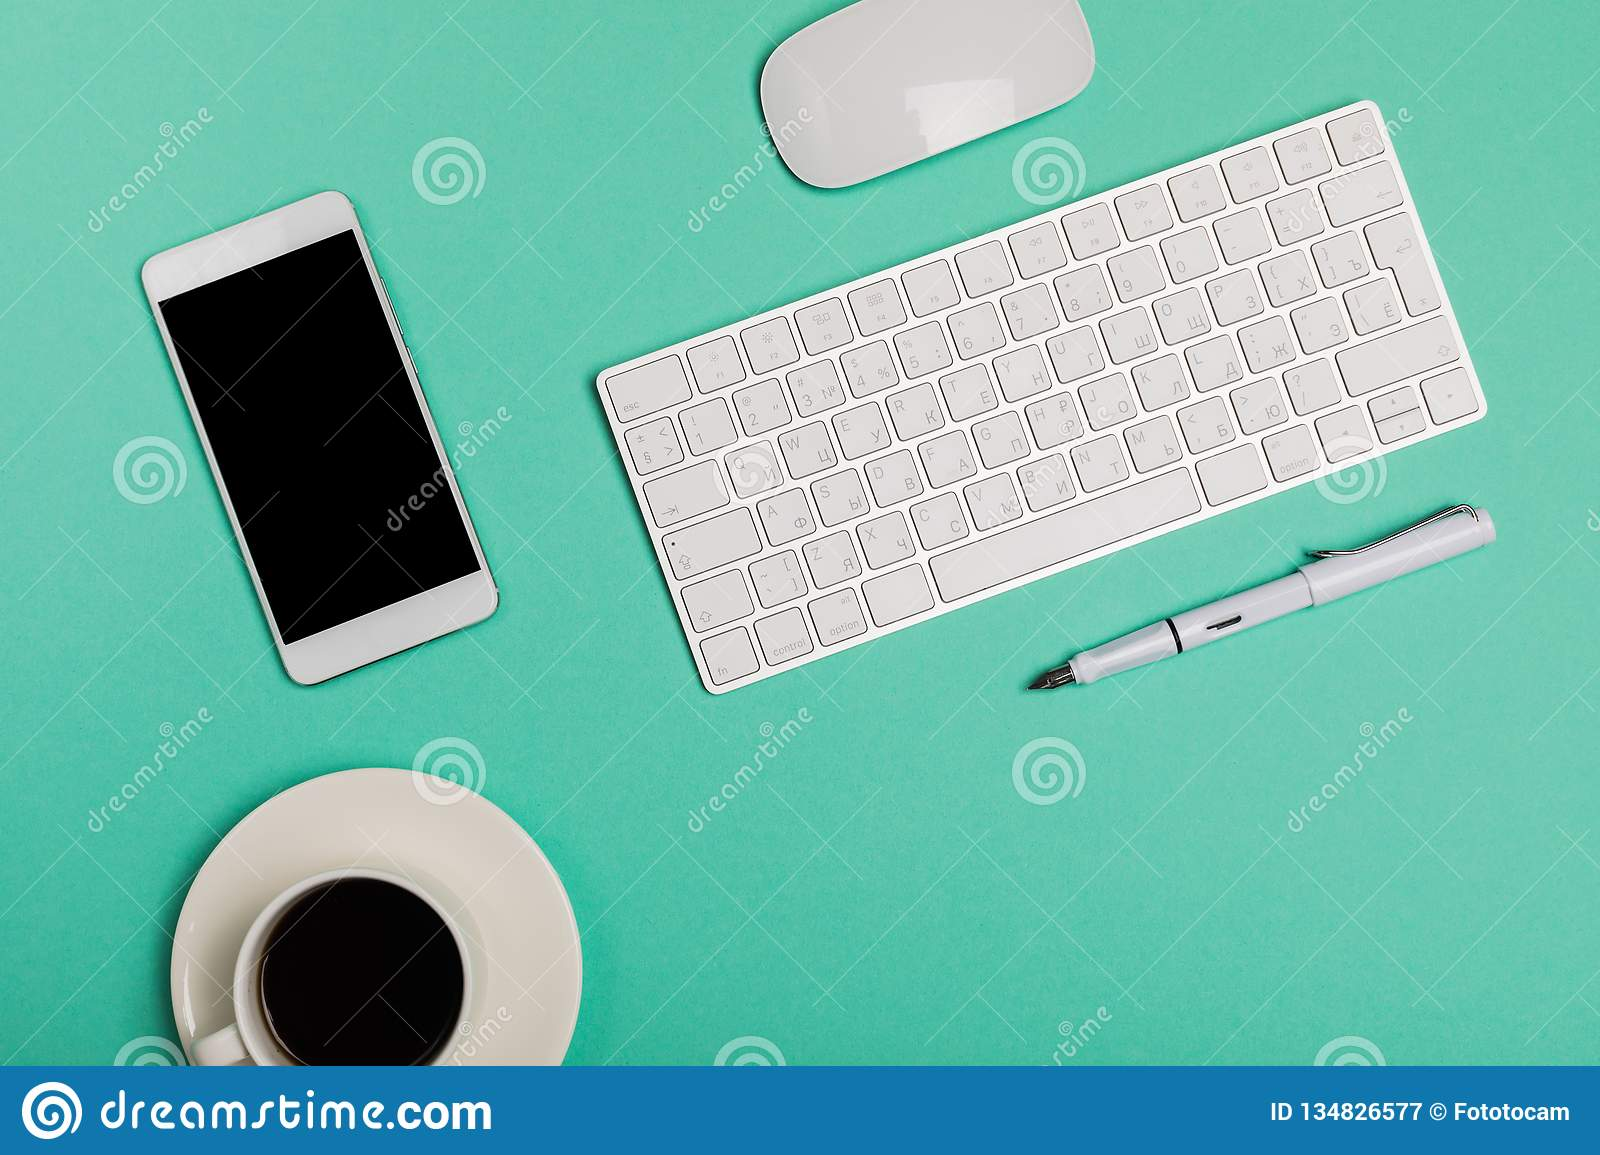 Top view of office desk workspace with smartphone, keyboard, coffee and mouse on blue background with copy space, graphic designer